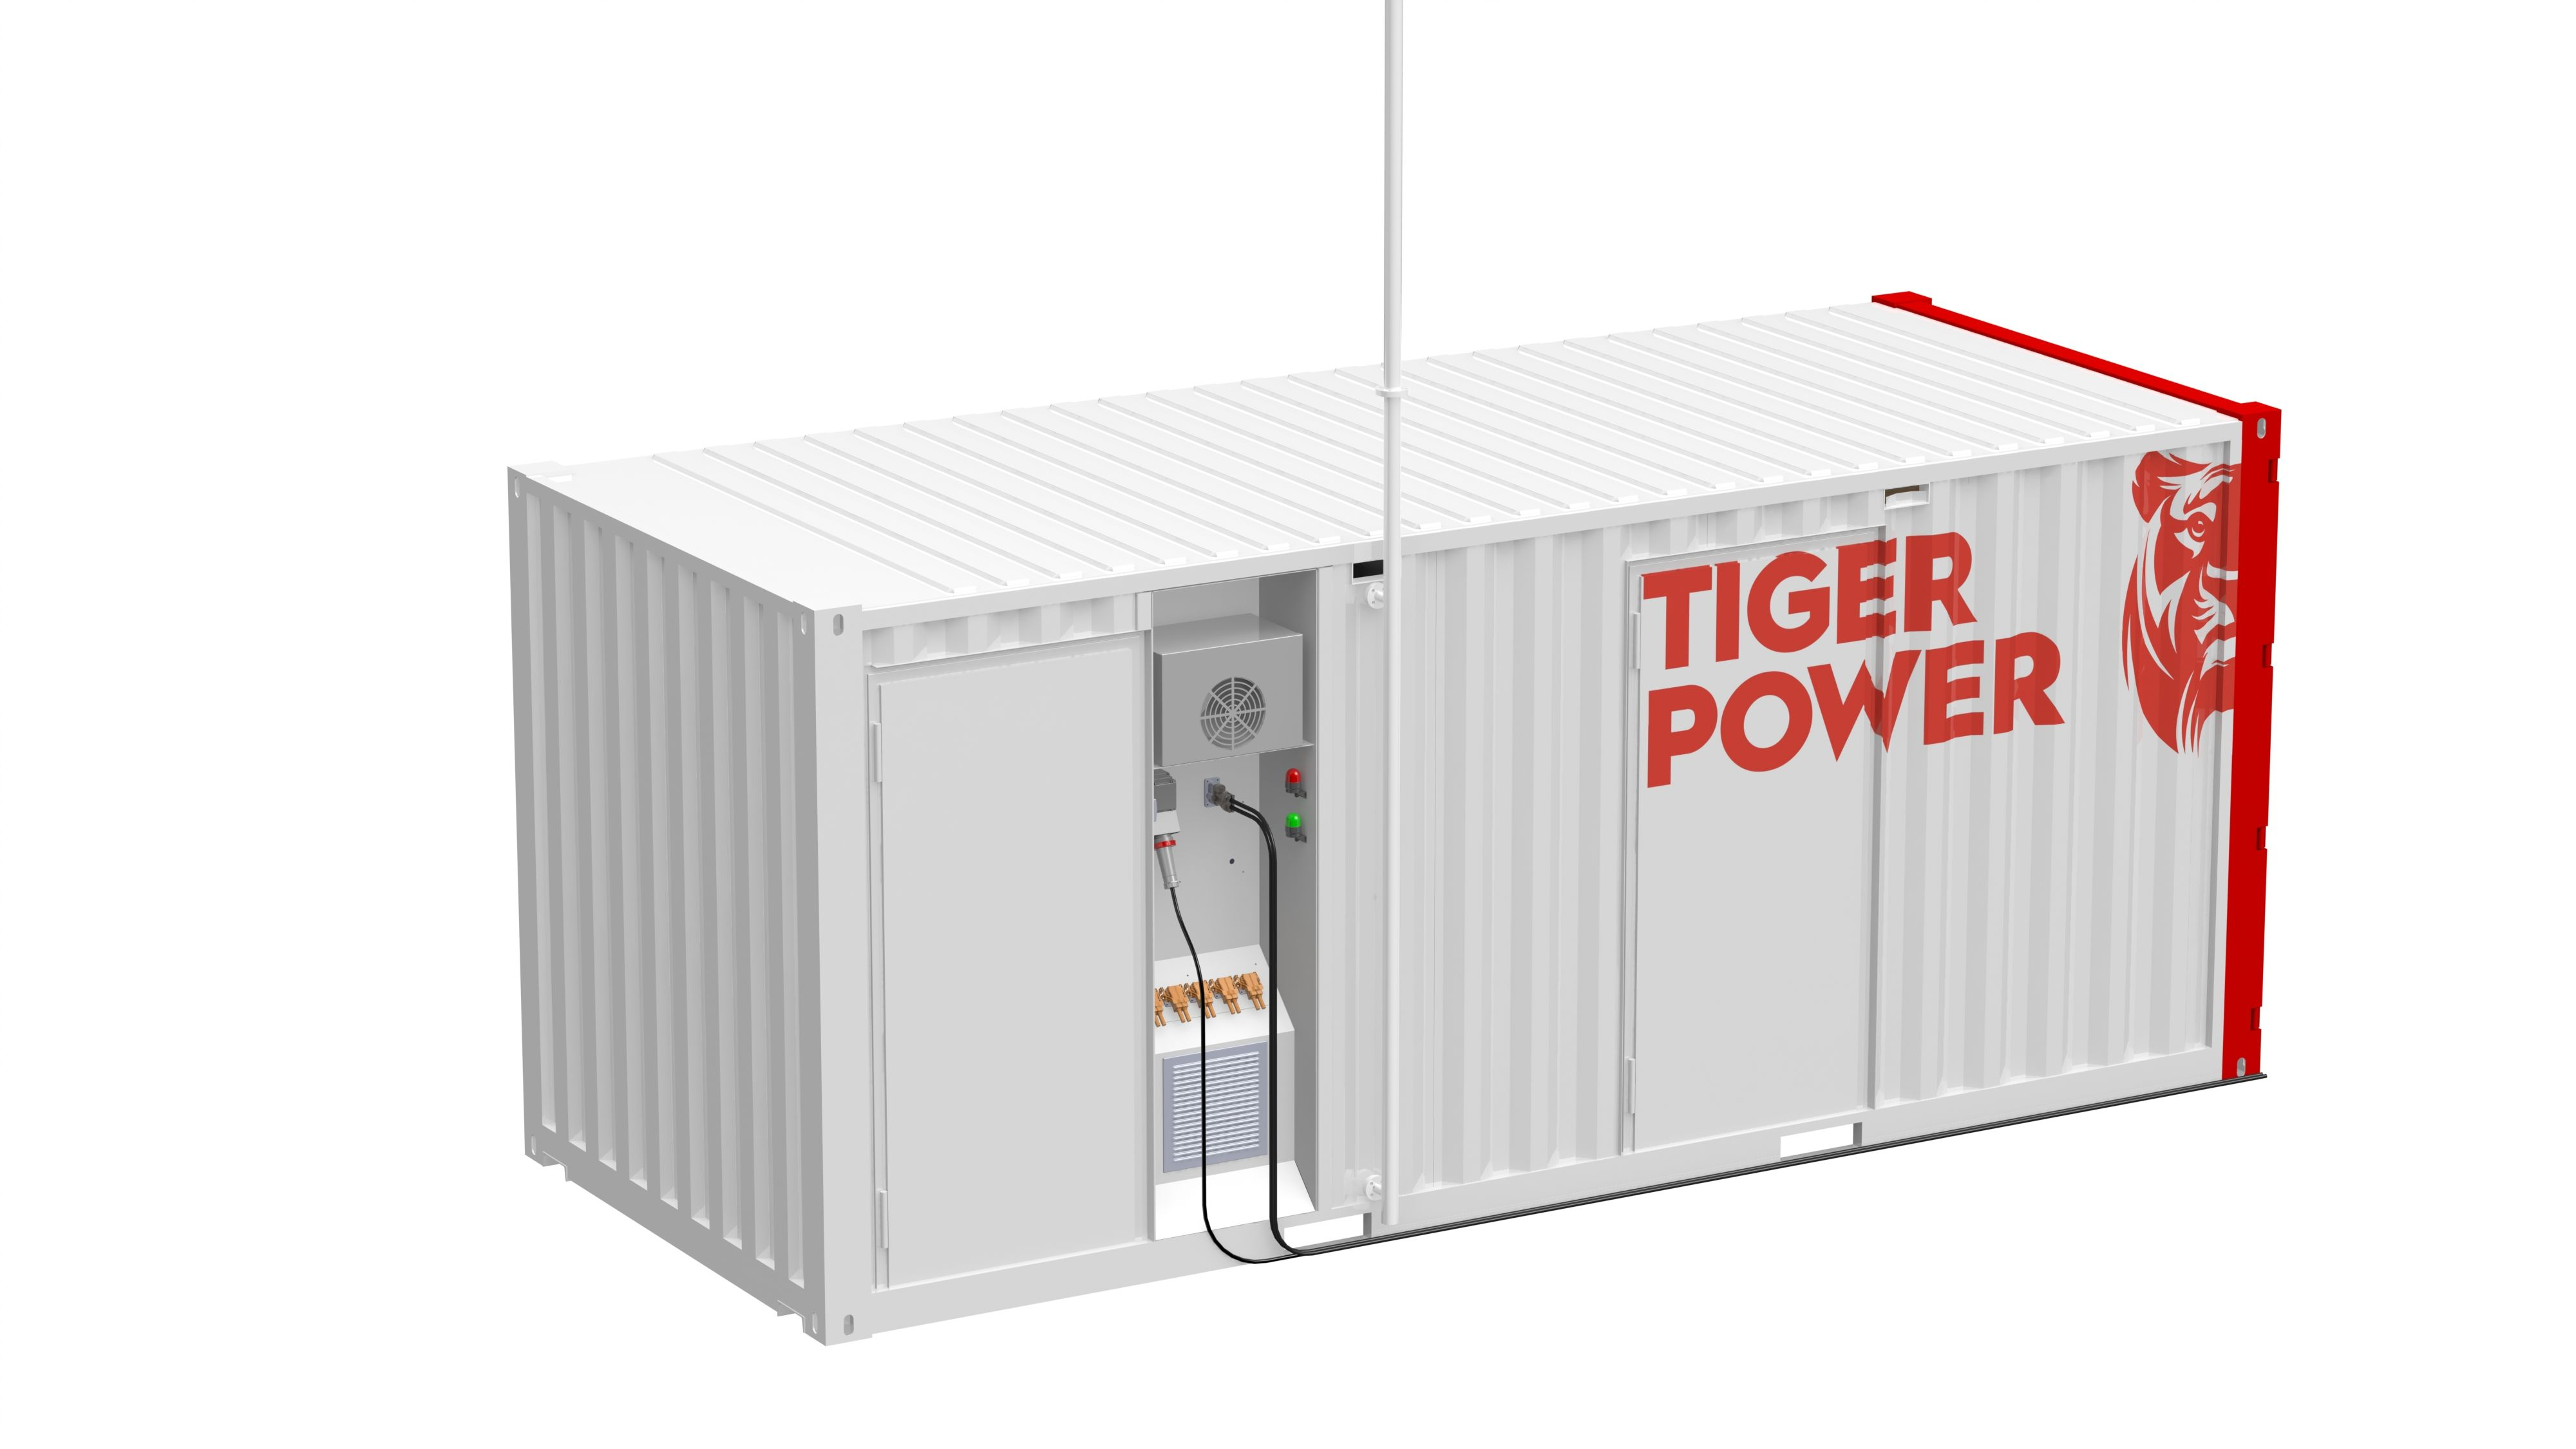 Tiger Power container  © Tiger Power